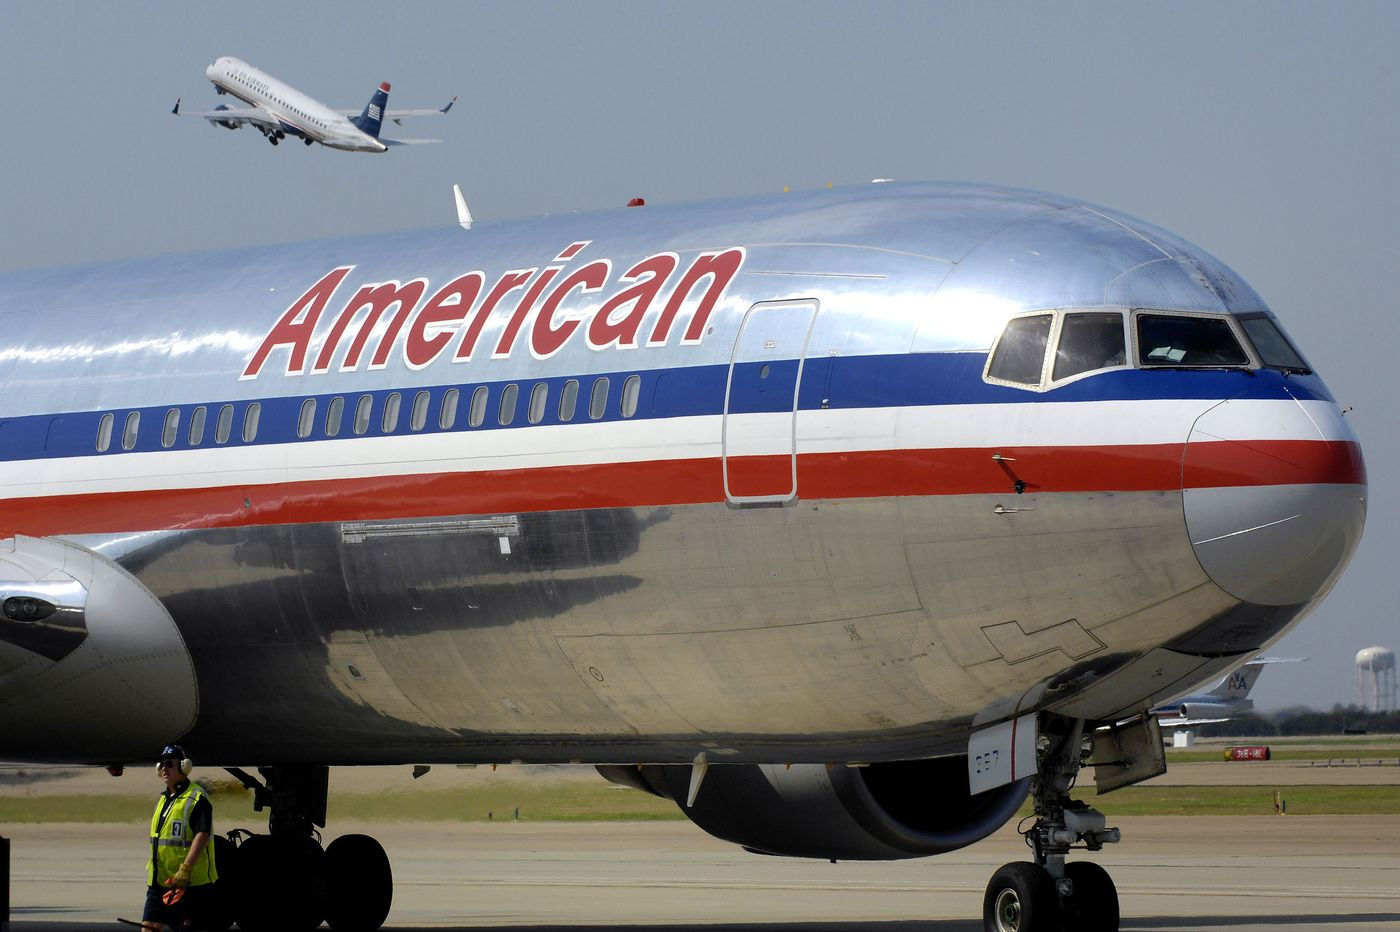 American Airlines Pilot Arrested on Suspicion of Being Drunk